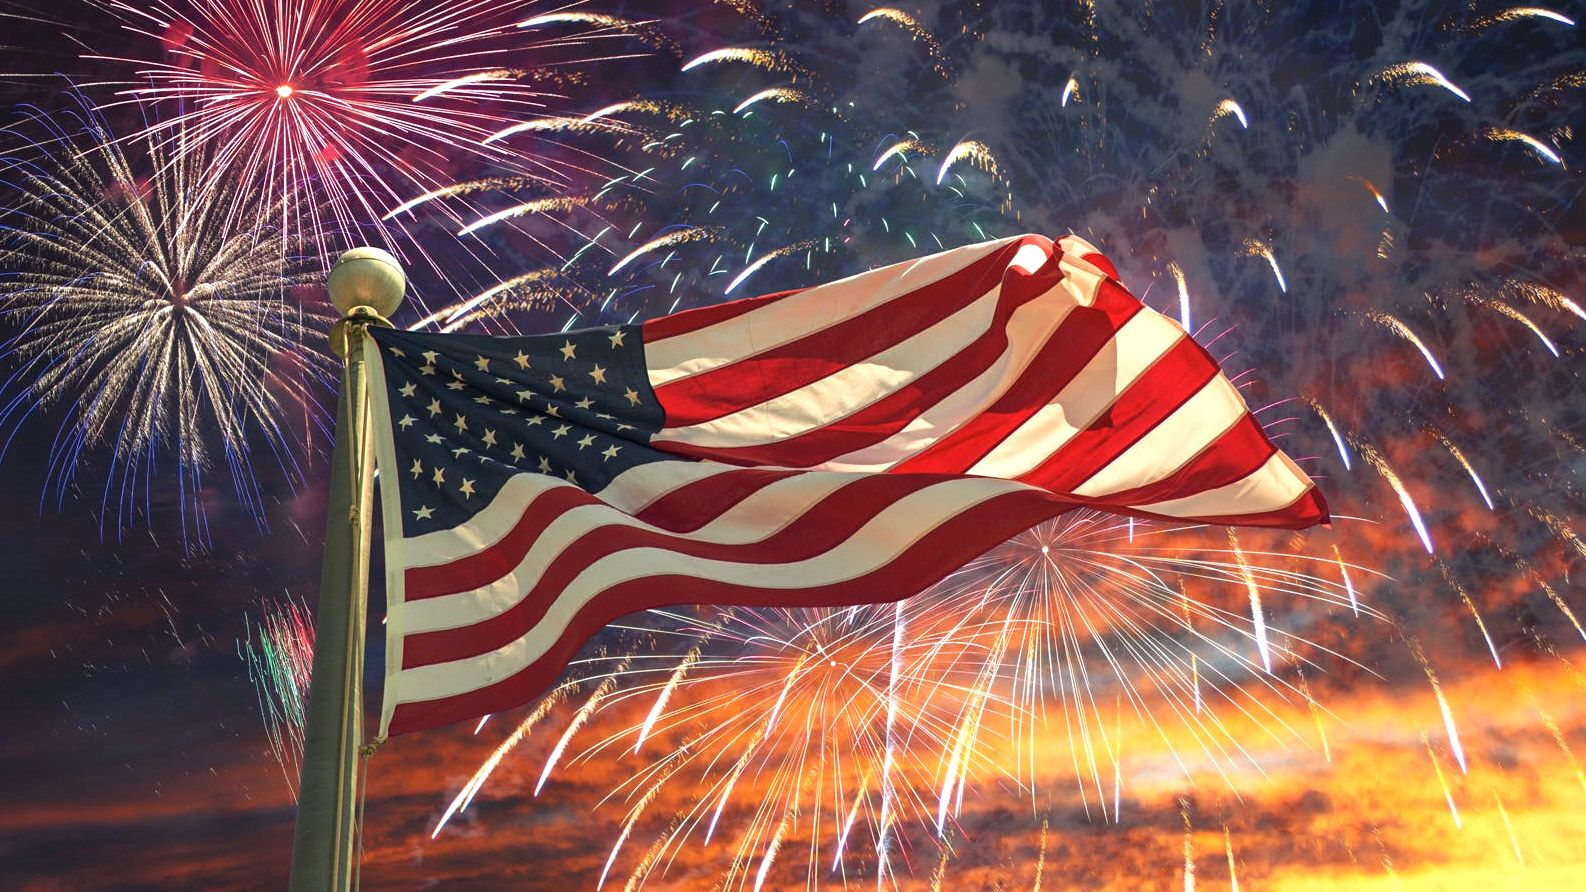 Happy 4th of July 2020, United States Independence Day